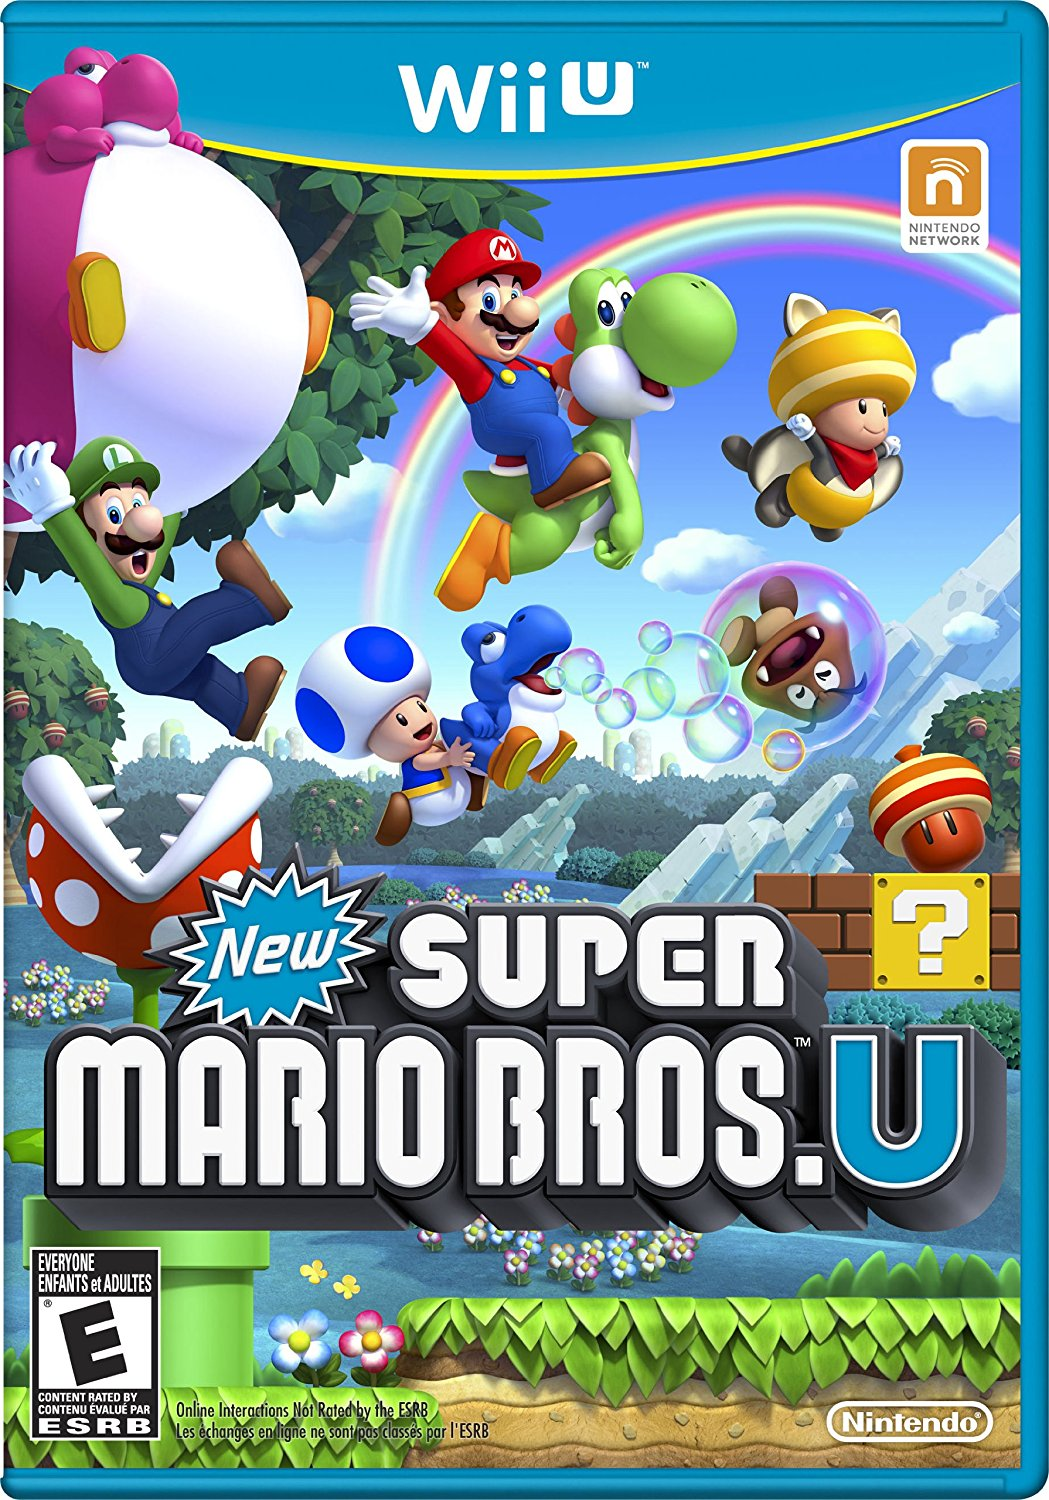 New Super Mario Bros U (Wii U/Switch): Same Old Super Mario Bros